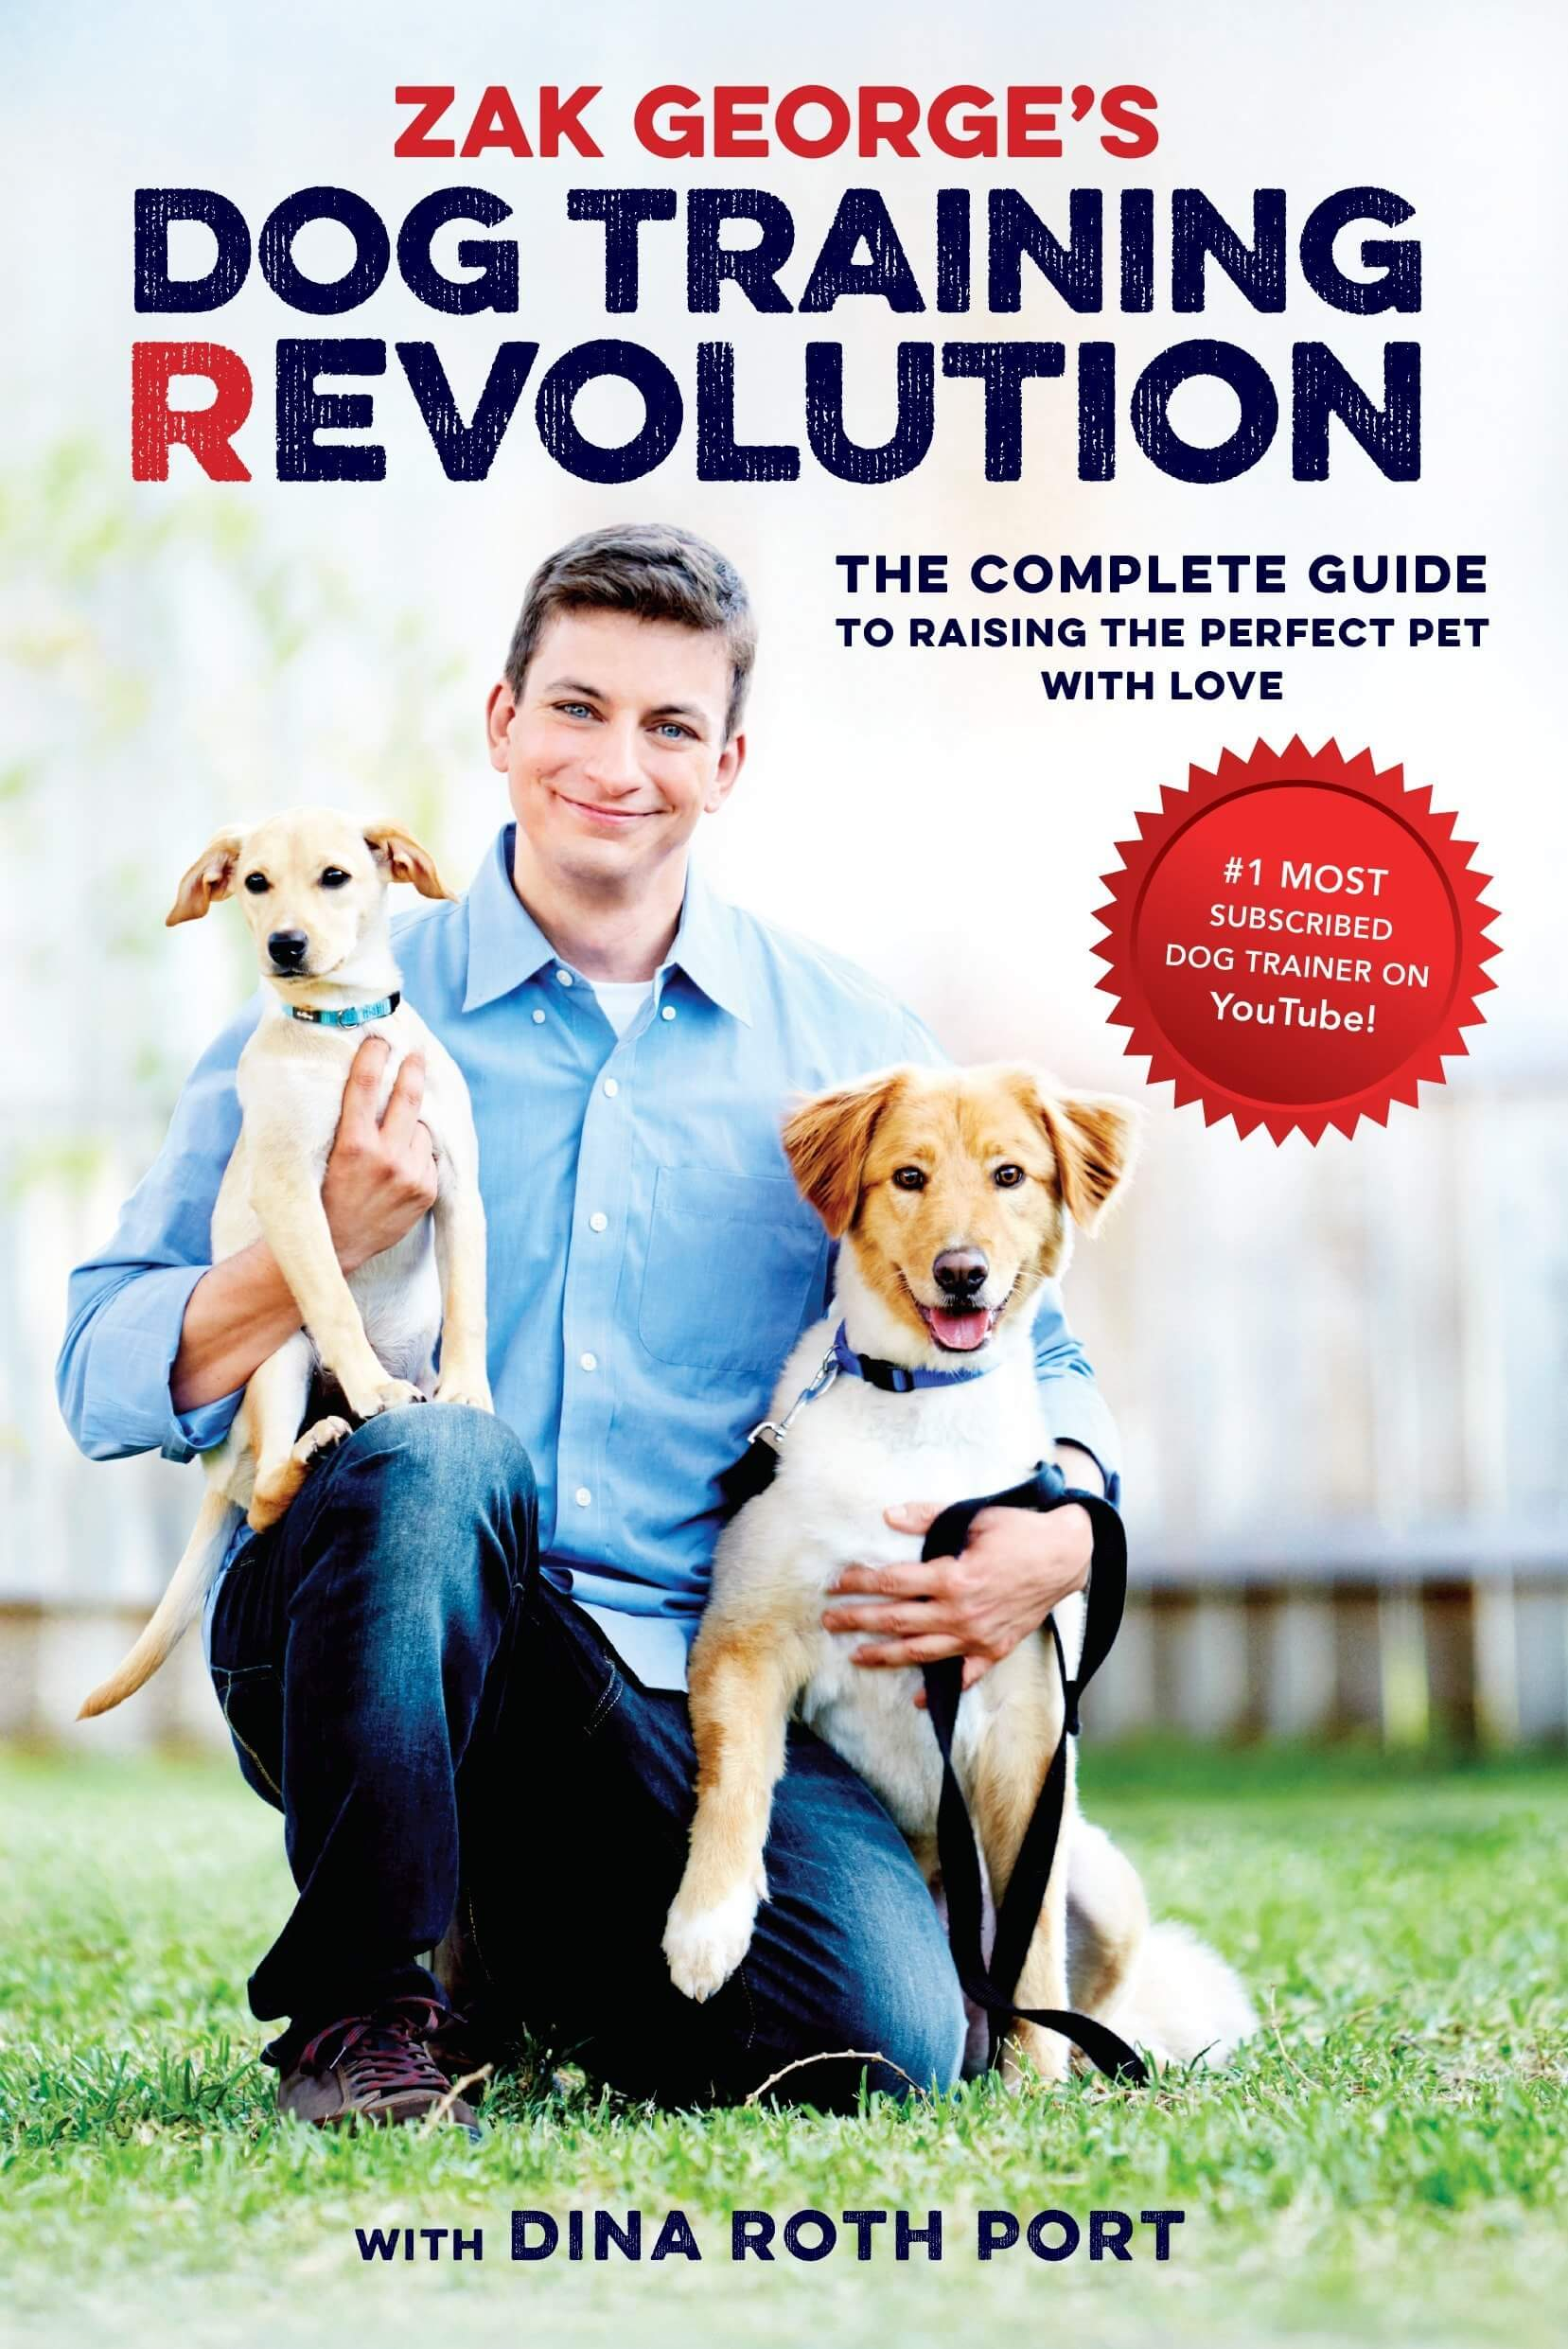 Zak George dog training revolution